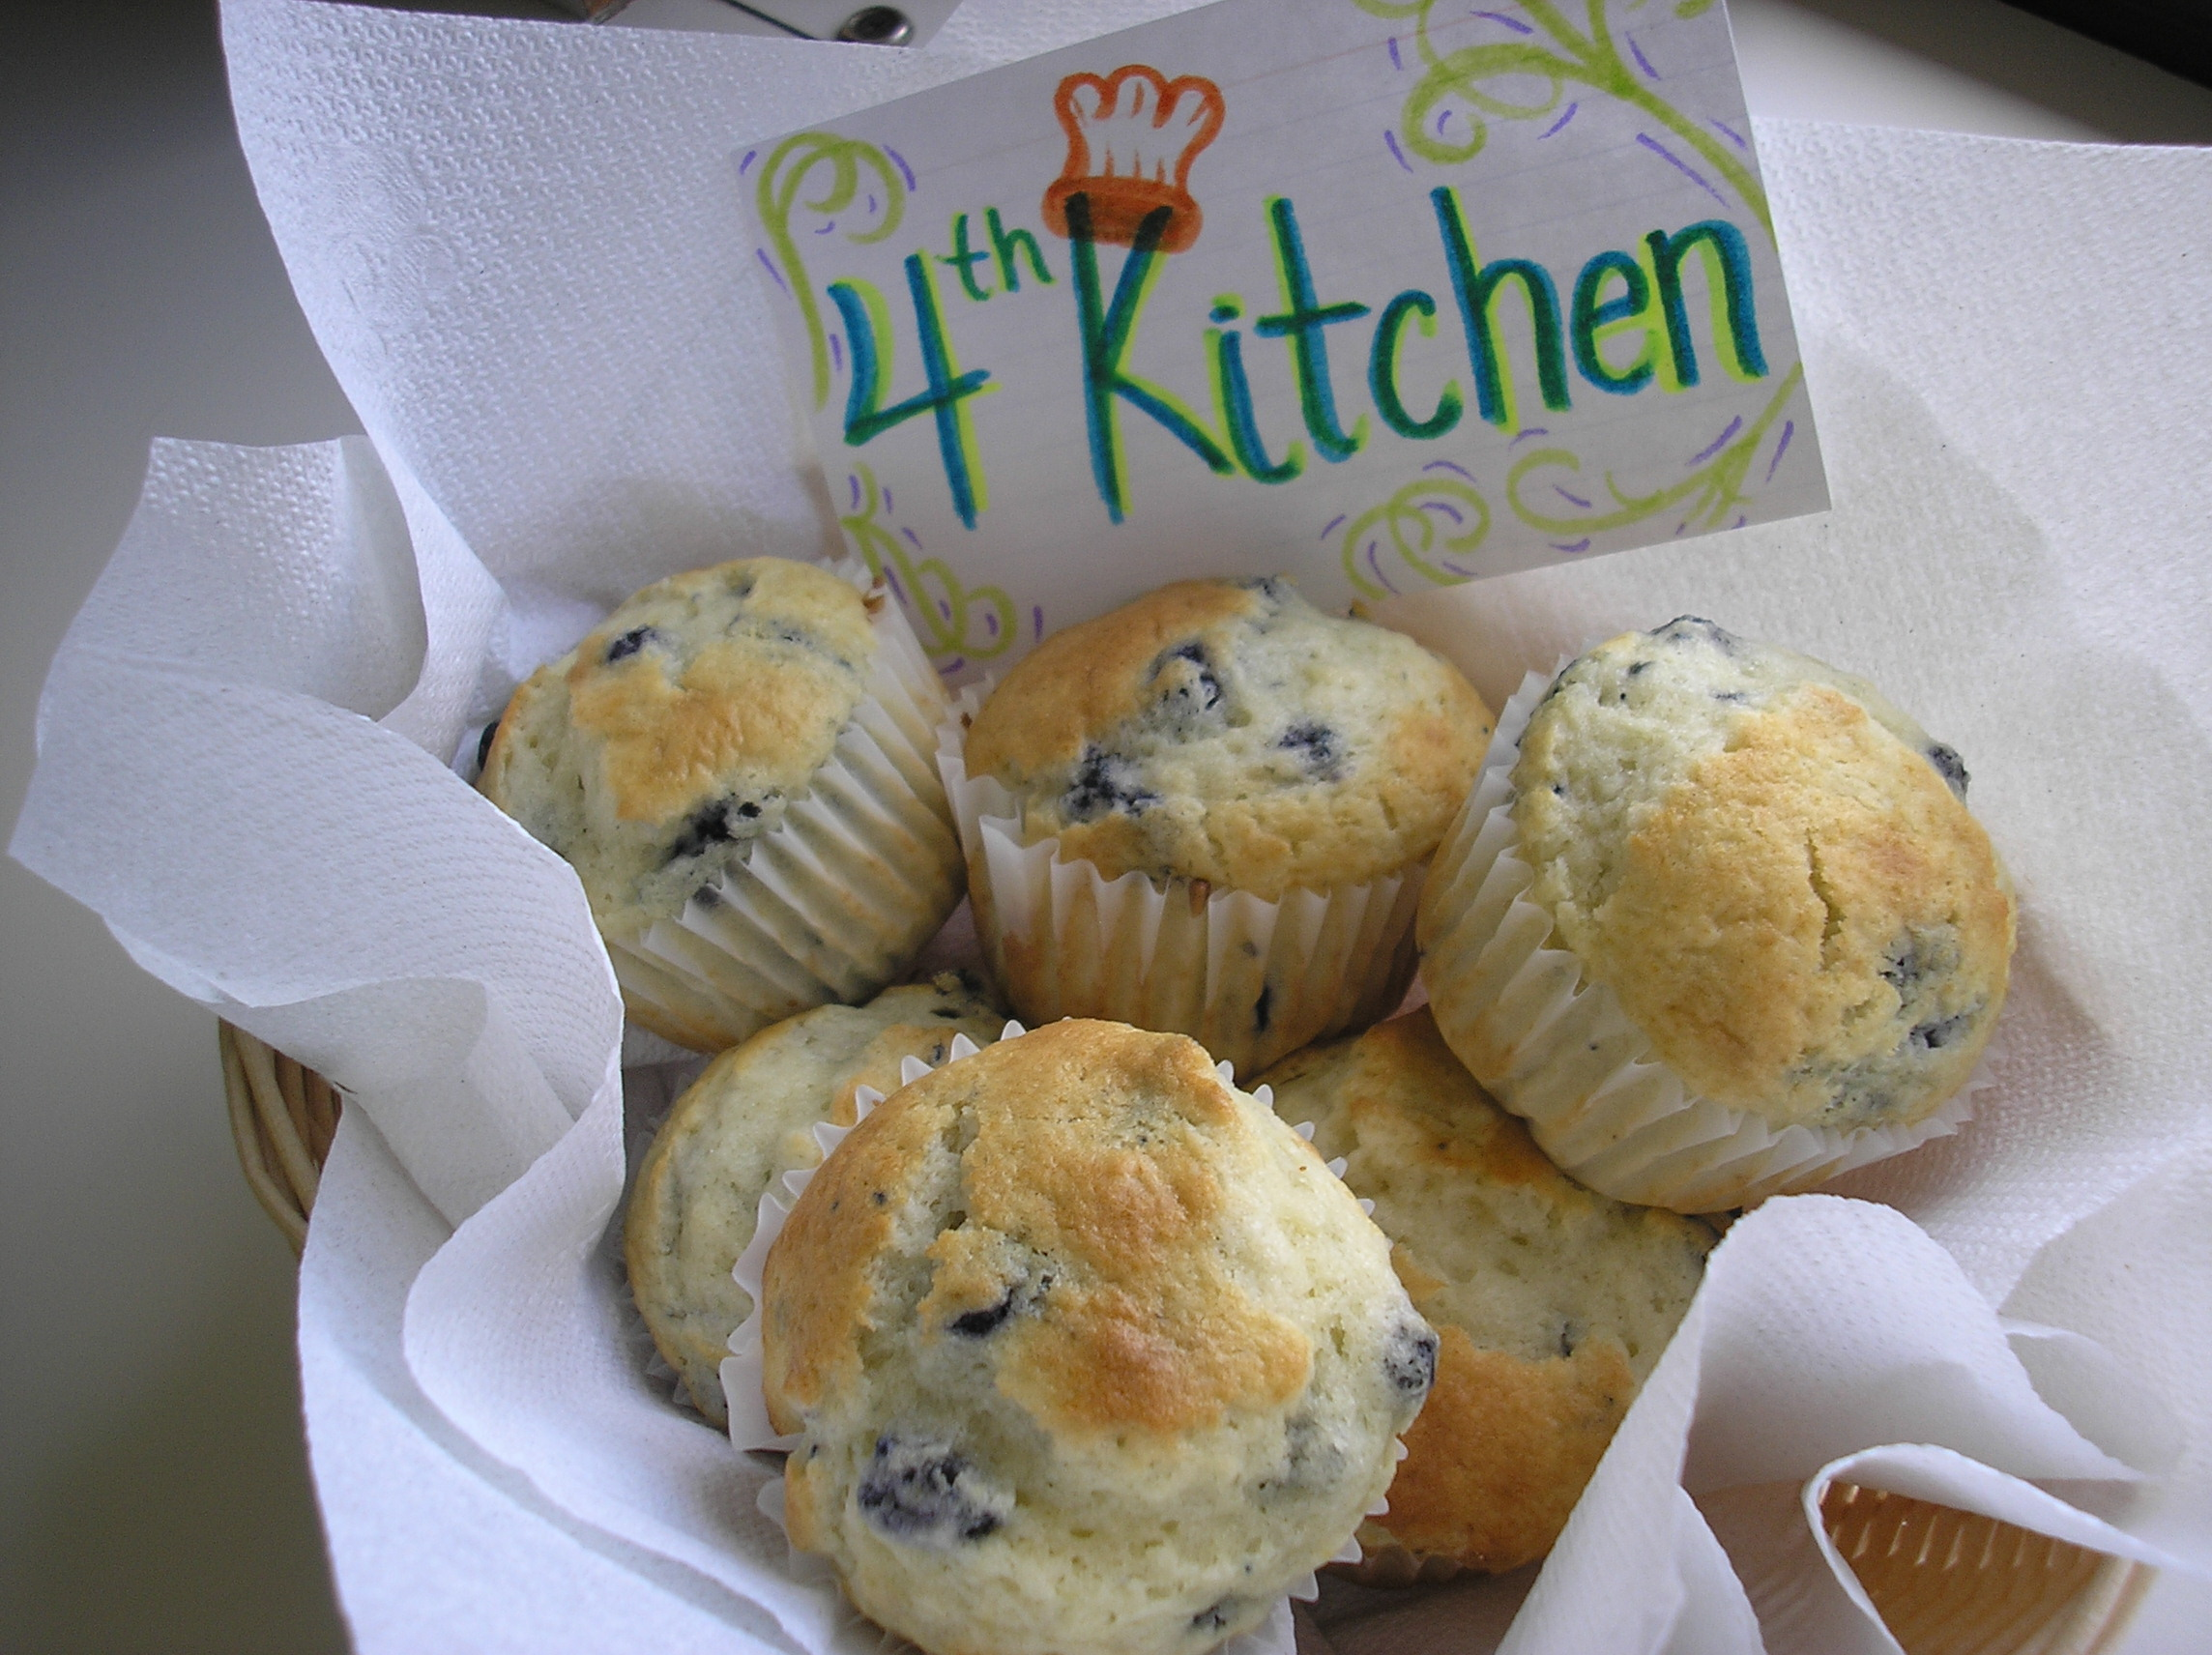 Great muffins and a cute card